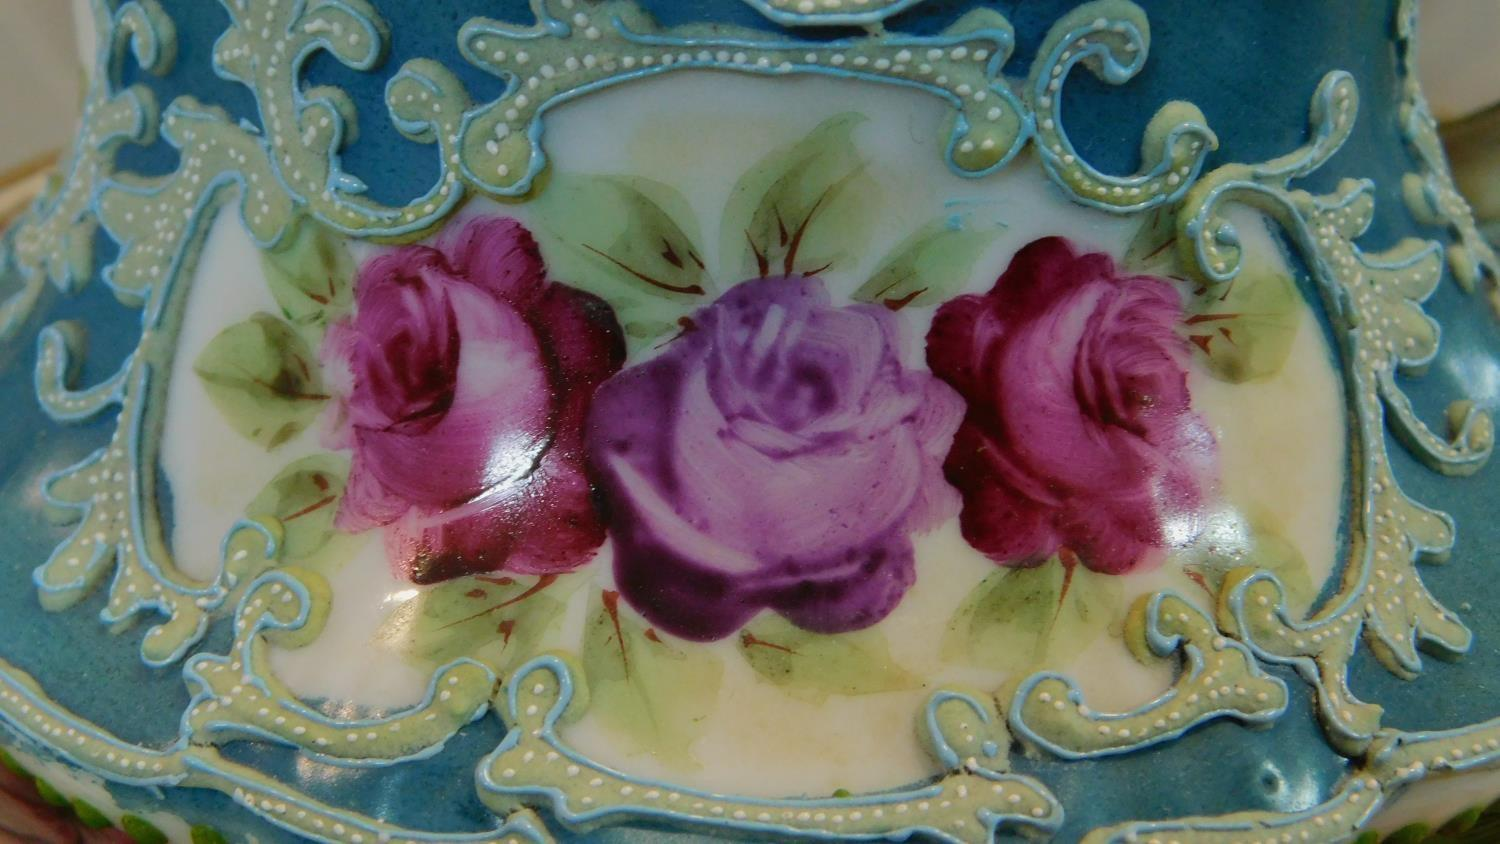 A miscellaneous collection of Victorian and later porcelain, vase, cups, saucers etc. - Image 3 of 14